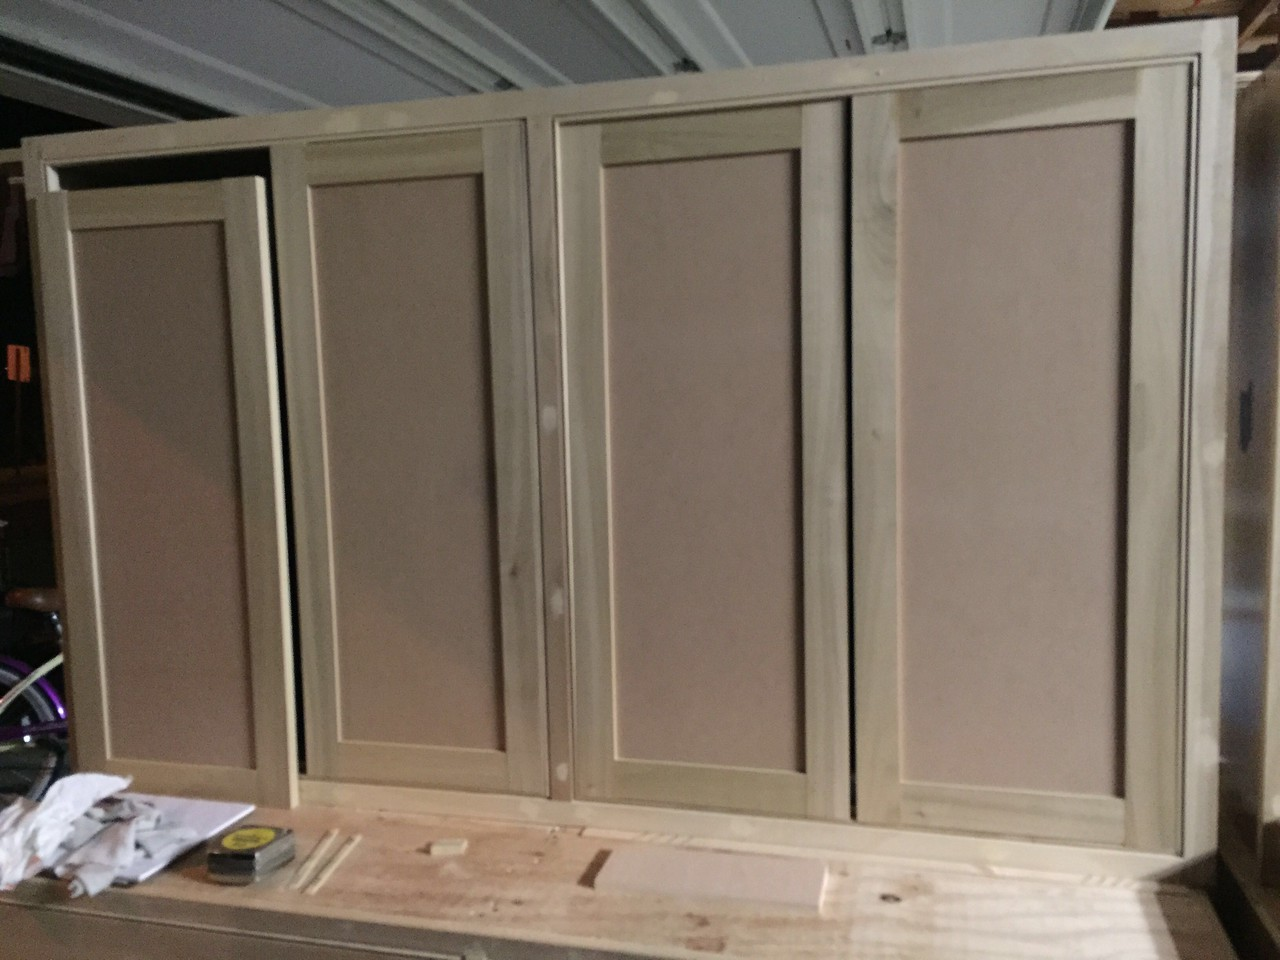 05/05/15<br /> Doors glued up & a test fit in cabinets.